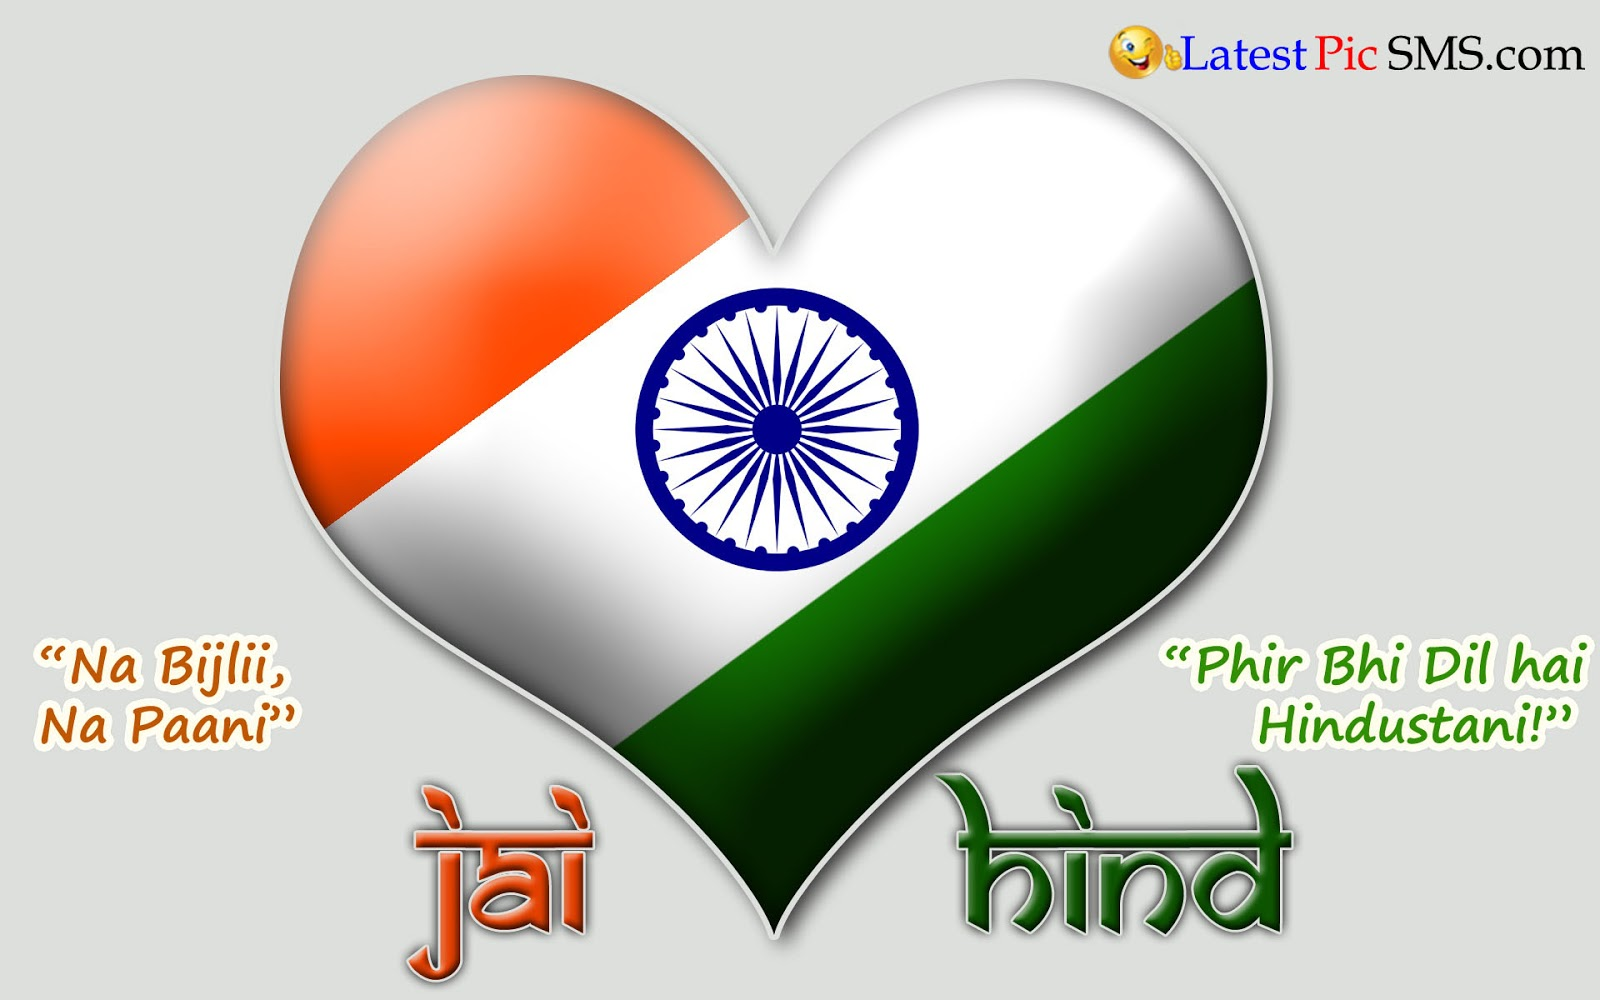 I love India Heart independence Day Photos